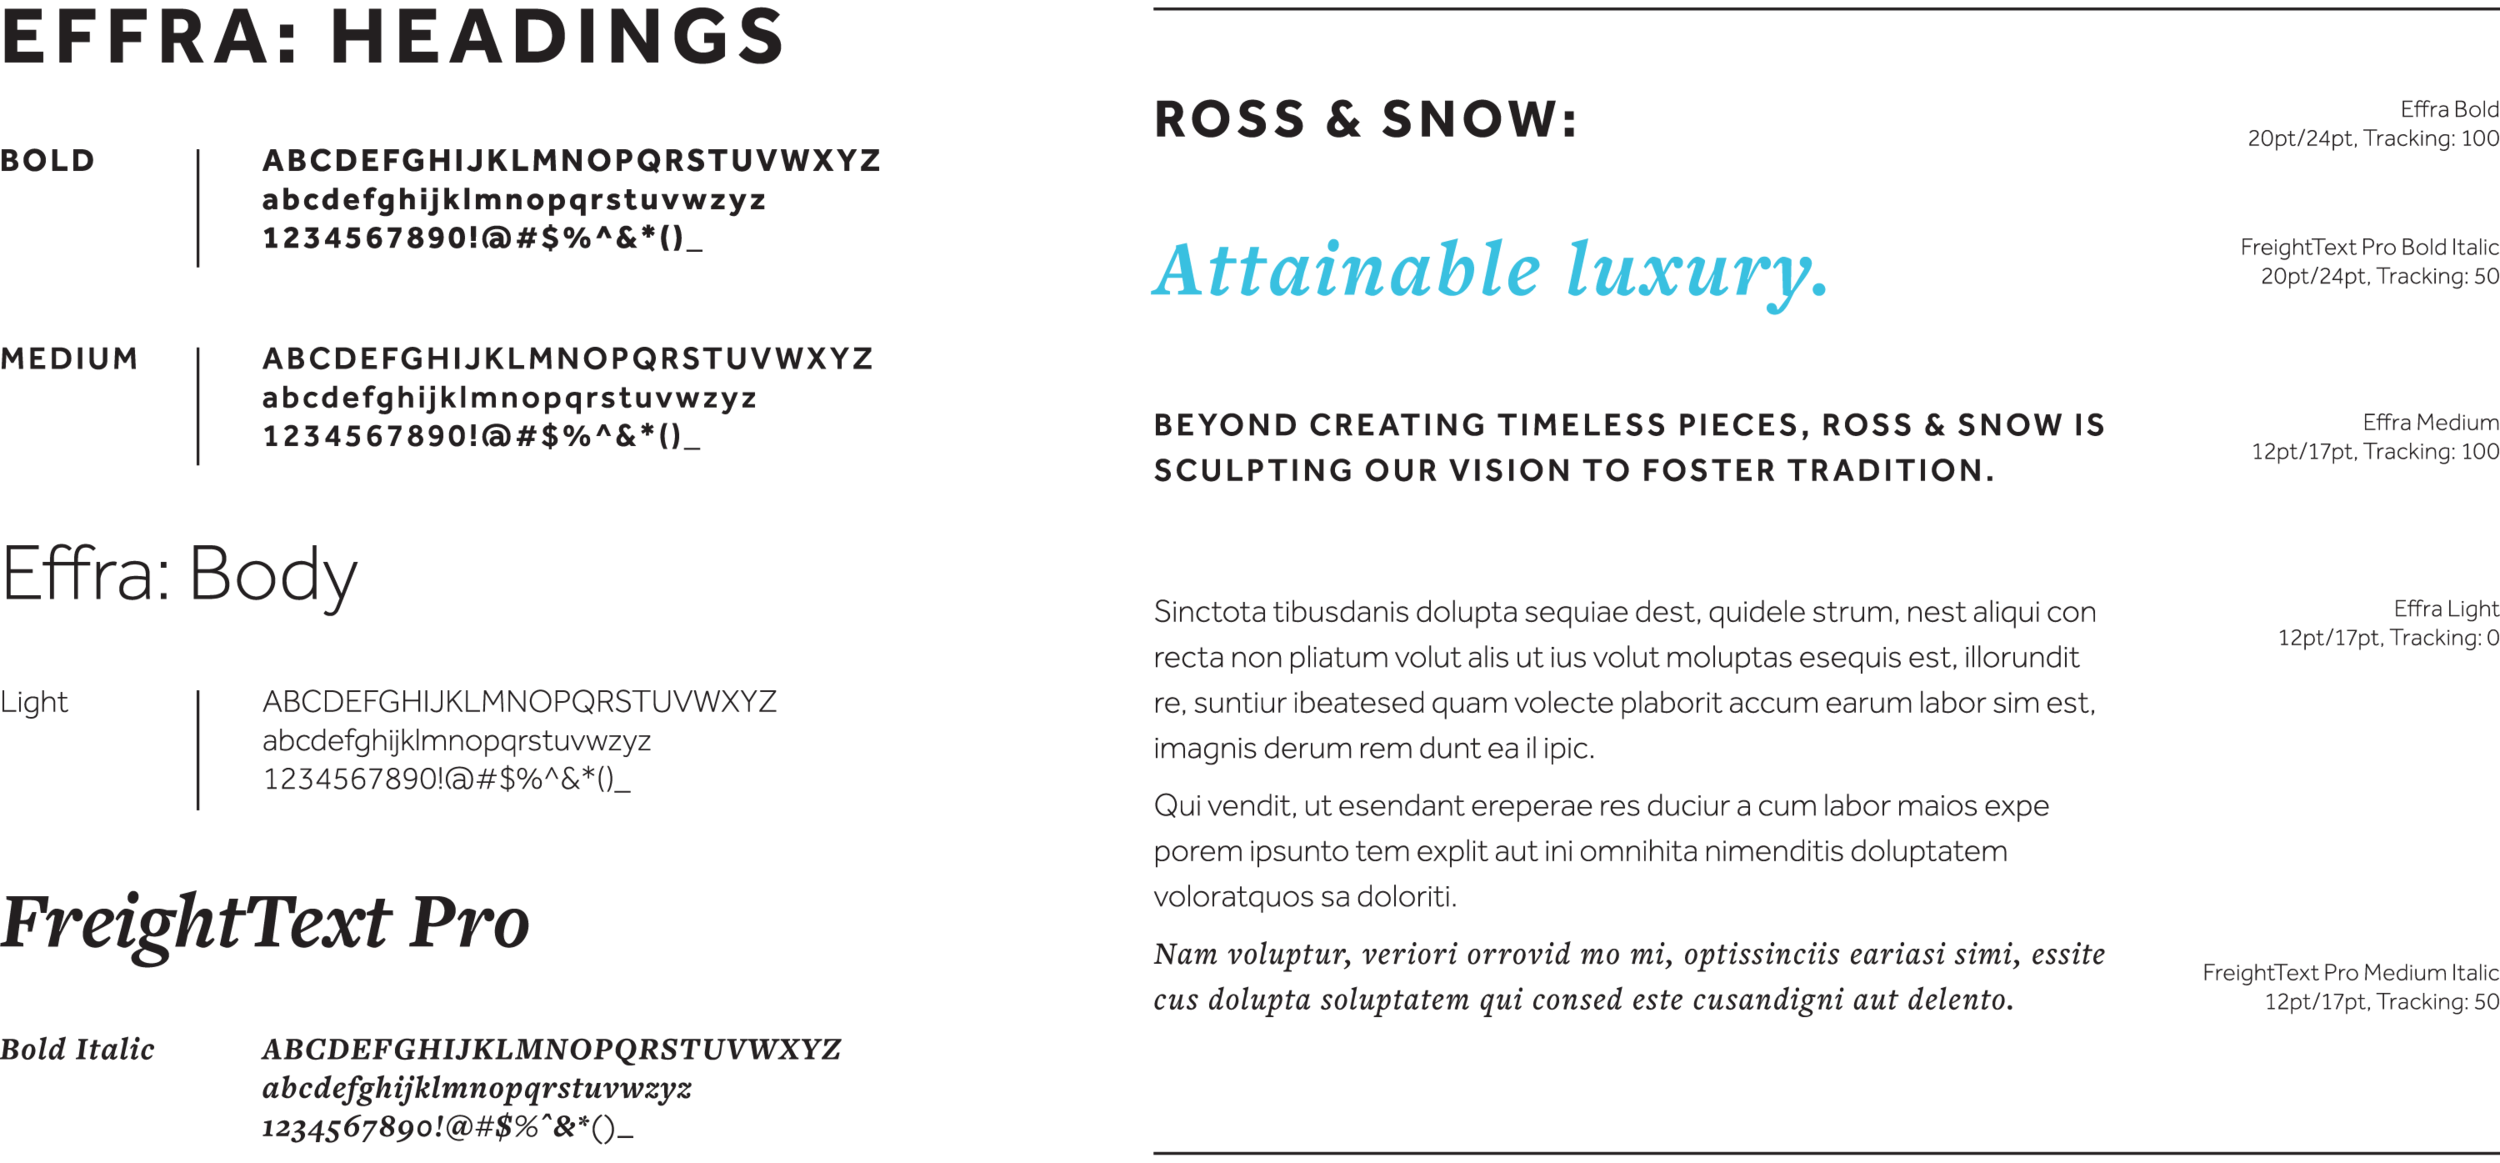 Ross-Snow-Web-02.png